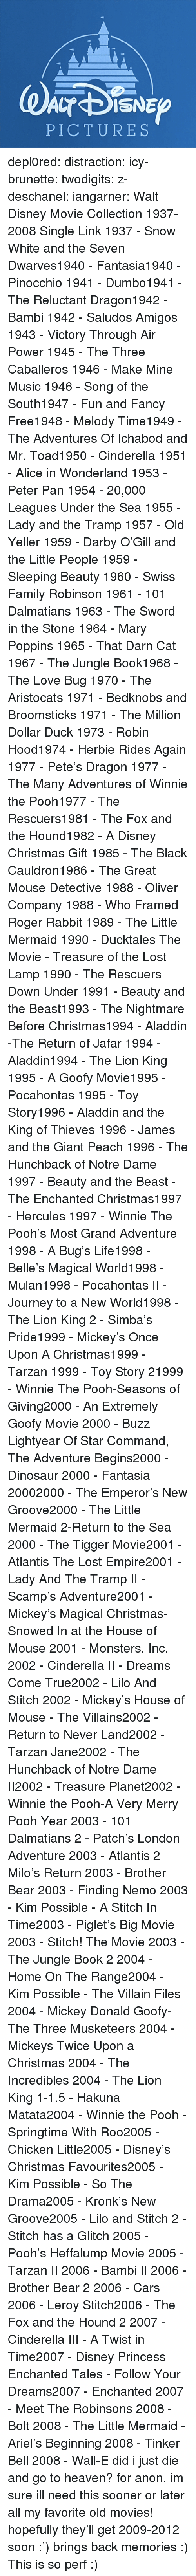 A Goofy Movie, Aladdin, and Ariel: PICTURES depl0red:  distraction:   icy-brunette:   twodigits:   z-deschanel:   iangarner:   Walt Disney Movie Collection 1937-2008 Single Link      1937 - Snow White and the Seven Dwarves1940 - Fantasia1940 - Pinocchio 1941 - Dumbo1941 - The Reluctant Dragon1942 - Bambi 1942 - Saludos Amigos 1943 - Victory Through Air Power 1945 - The Three Caballeros 1946 - Make Mine Music 1946 - Song of the South1947 - Fun and Fancy Free1948 - Melody Time1949 - The Adventures Of Ichabod and Mr. Toad1950 - Cinderella 1951 - Alice in Wonderland 1953 - Peter Pan 1954 - 20,000 Leagues Under the Sea 1955 - Lady and the Tramp 1957 - Old Yeller 1959 - Darby O'Gill and the Little People 1959 - Sleeping Beauty 1960 - Swiss Family Robinson 1961 - 101 Dalmatians 1963 - The Sword in the Stone 1964 - Mary Poppins 1965 - That Darn Cat 1967 - The Jungle Book1968 - The Love Bug 1970 - The Aristocats 1971 - Bedknobs and Broomsticks 1971 - The Million Dollar Duck 1973 - Robin Hood1974 - Herbie Rides Again 1977 - Pete's Dragon 1977 - The Many Adventures of Winnie the Pooh1977 - The Rescuers1981 - The Fox and the Hound1982 - A Disney Christmas Gift 1985 - The Black Cauldron1986 - The Great Mouse Detective 1988 - Oliver  Company 1988 - Who Framed Roger Rabbit 1989 - The Little Mermaid 1990 - Ducktales The Movie - Treasure of the Lost Lamp 1990 - The Rescuers Down Under 1991 - Beauty and the Beast1993 - The Nightmare Before Christmas1994 - Aladdin -The Return of Jafar 1994 - Aladdin1994 - The Lion King 1995 - A Goofy Movie1995 - Pocahontas 1995 - Toy Story1996 - Aladdin and the King of Thieves 1996 - James and the Giant Peach 1996 - The Hunchback of Notre Dame 1997 - Beauty and the Beast - The Enchanted Christmas1997 - Hercules 1997 - Winnie The Pooh's Most Grand Adventure 1998 - A Bug's Life1998 - Belle's Magical World1998 - Mulan1998 - Pocahontas II - Journey to a New World1998 - The Lion King 2 - Simba's Pride1999 - Mickey's Once Upon A Christmas1999 - Tarzan 1999 - Toy Story 21999 - Winnie The Pooh-Seasons of Giving2000 - An Extremely Goofy Movie 2000 - Buzz Lightyear Of Star Command, The Adventure Begins2000 - Dinosaur 2000 - Fantasia 20002000 - The Emperor's New Groove2000 - The Little Mermaid 2-Return to the Sea 2000 - The Tigger Movie2001 - Atlantis The Lost Empire2001 - Lady And The Tramp II - Scamp's Adventure2001 - Mickey's Magical Christmas-Snowed In at the House of Mouse 2001 - Monsters, Inc. 2002 - Cinderella II - Dreams Come True2002 - Lilo And Stitch 2002 - Mickey's House of Mouse - The Villains2002 - Return to Never Land2002 - Tarzan  Jane2002 - The Hunchback of Notre Dame II2002 - Treasure Planet2002 - Winnie the Pooh-A Very Merry Pooh Year 2003 - 101 Dalmatians 2 - Patch's London Adventure 2003 - Atlantis 2 Milo's Return 2003 - Brother Bear 2003 - Finding Nemo 2003 - Kim Possible - A Stitch In Time2003 - Piglet's Big Movie 2003 - Stitch! The Movie 2003 - The Jungle Book 2 2004 - Home On The Range2004 - Kim Possible - The Villain Files 2004 - Mickey Donald Goofy-The Three Musketeers 2004 - Mickeys Twice Upon a Christmas 2004 - The Incredibles 2004 - The Lion King 1-1.5 - Hakuna Matata2004 - Winnie the Pooh - Springtime With Roo2005 - Chicken Little2005 - Disney's Christmas Favourites2005 - Kim Possible - So The Drama2005 - Kronk's New Groove2005 - Lilo and Stitch 2 - Stitch has a Glitch 2005 - Pooh's Heffalump Movie 2005 - Tarzan II 2006 - Bambi II 2006 - Brother Bear 2 2006 - Cars 2006 - Leroy  Stitch2006 - The Fox and the Hound 2 2007 - Cinderella III - A Twist in Time2007 - Disney Princess Enchanted Tales - Follow Your Dreams2007 - Enchanted 2007 - Meet The Robinsons 2008 - Bolt 2008 - The Little Mermaid - Ariel's Beginning 2008 - Tinker Bell 2008 - Wall-E      did i just die and go to heaven?   for anon.    im sure ill need this sooner or later    all my favorite old movies! hopefully they'll get 2009-2012 soon :')   brings back memories :)   This is so perf :)